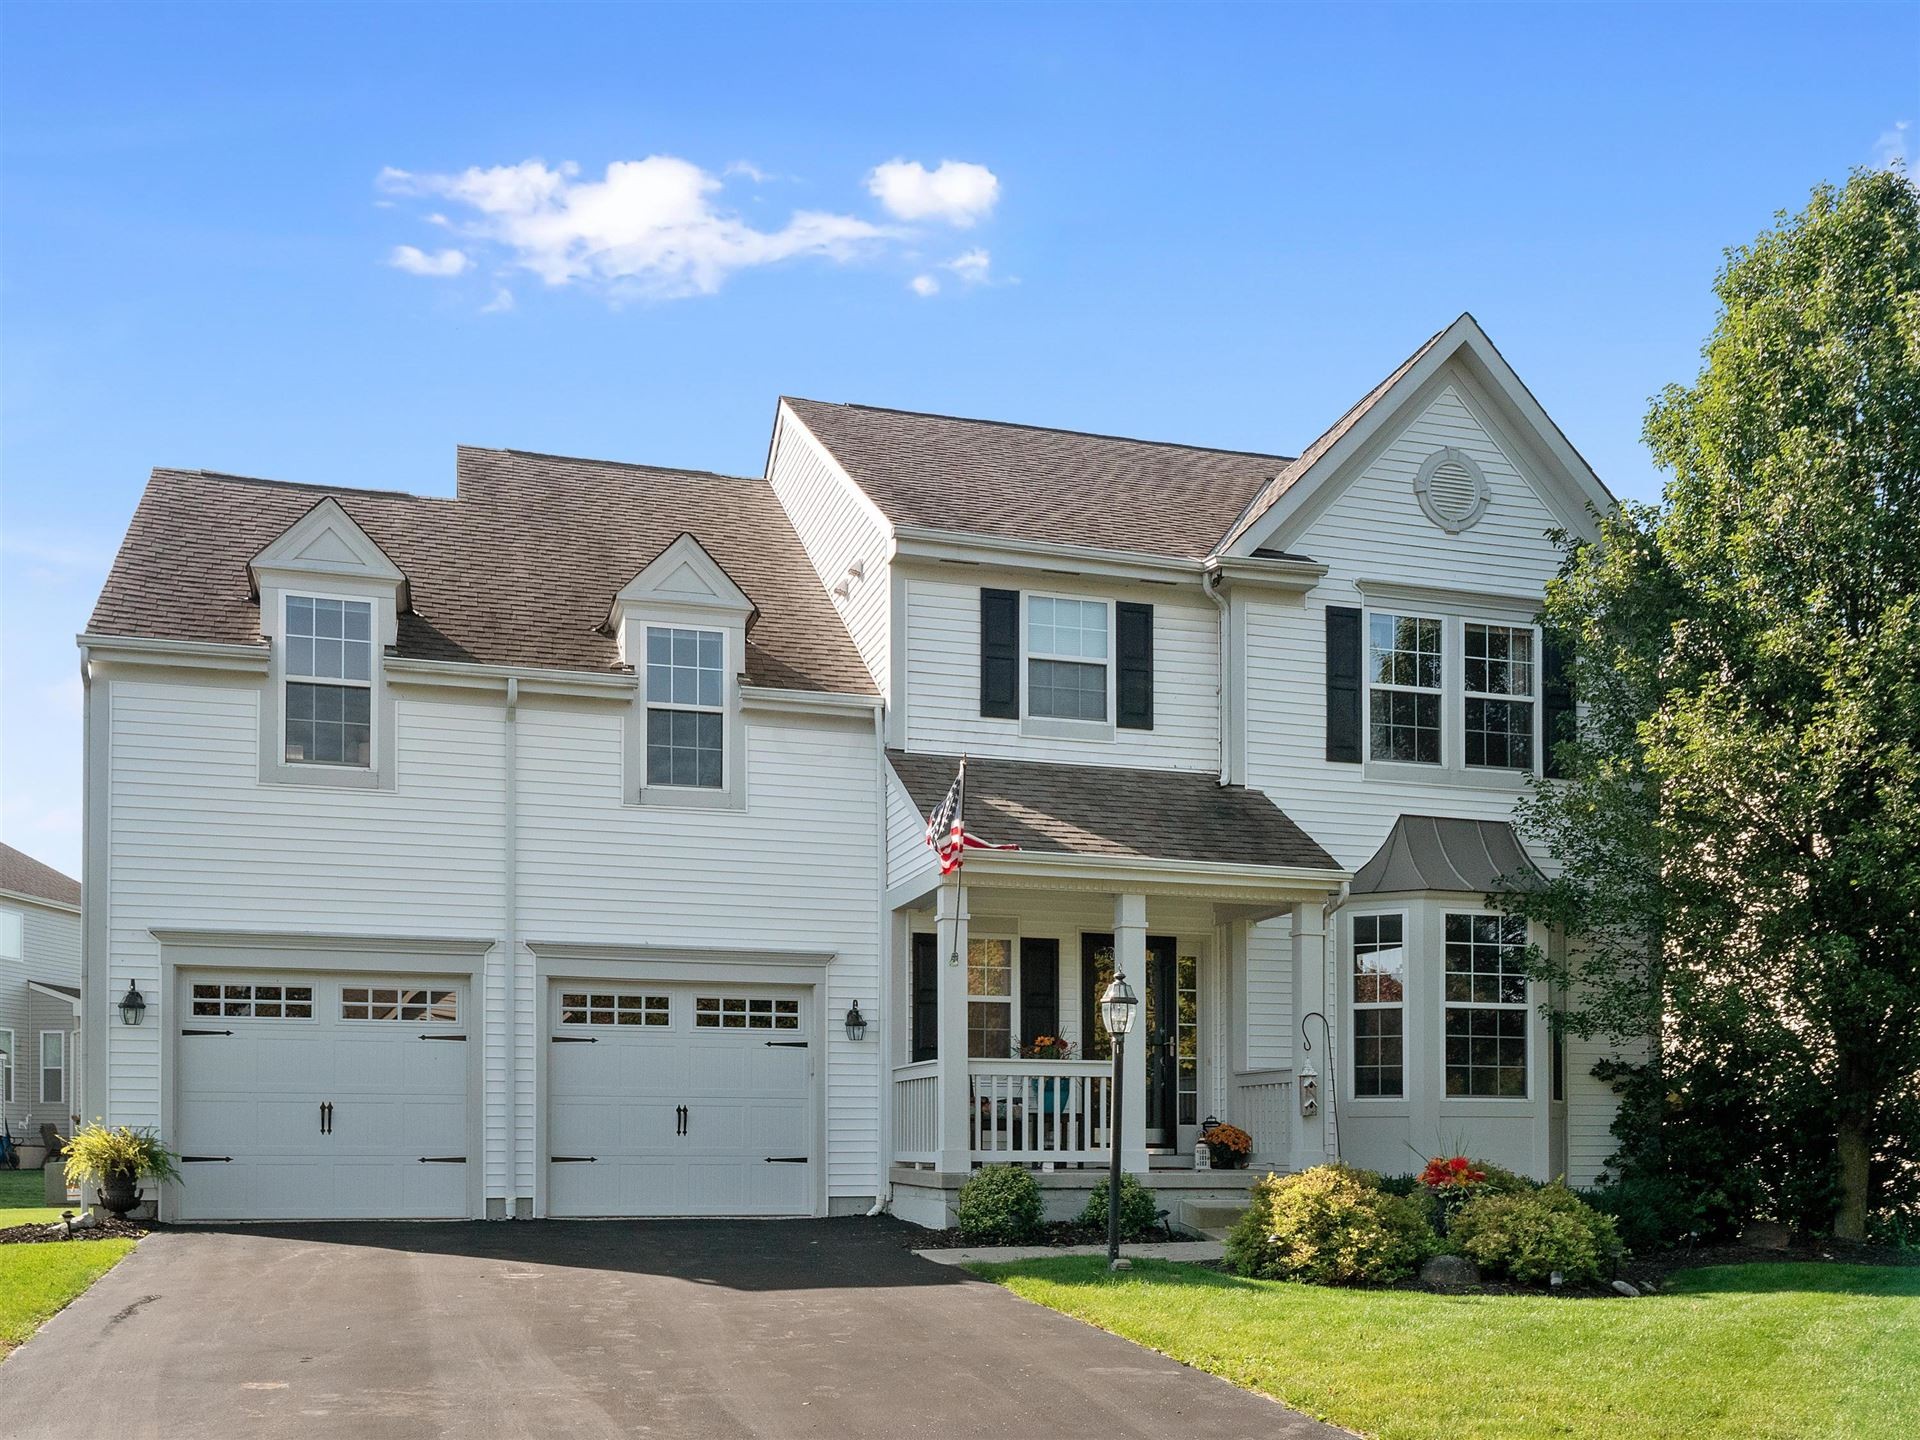 Photo of 6600 Falling Meadows Drive, Galena, OH 43021 (MLS # 220035466)